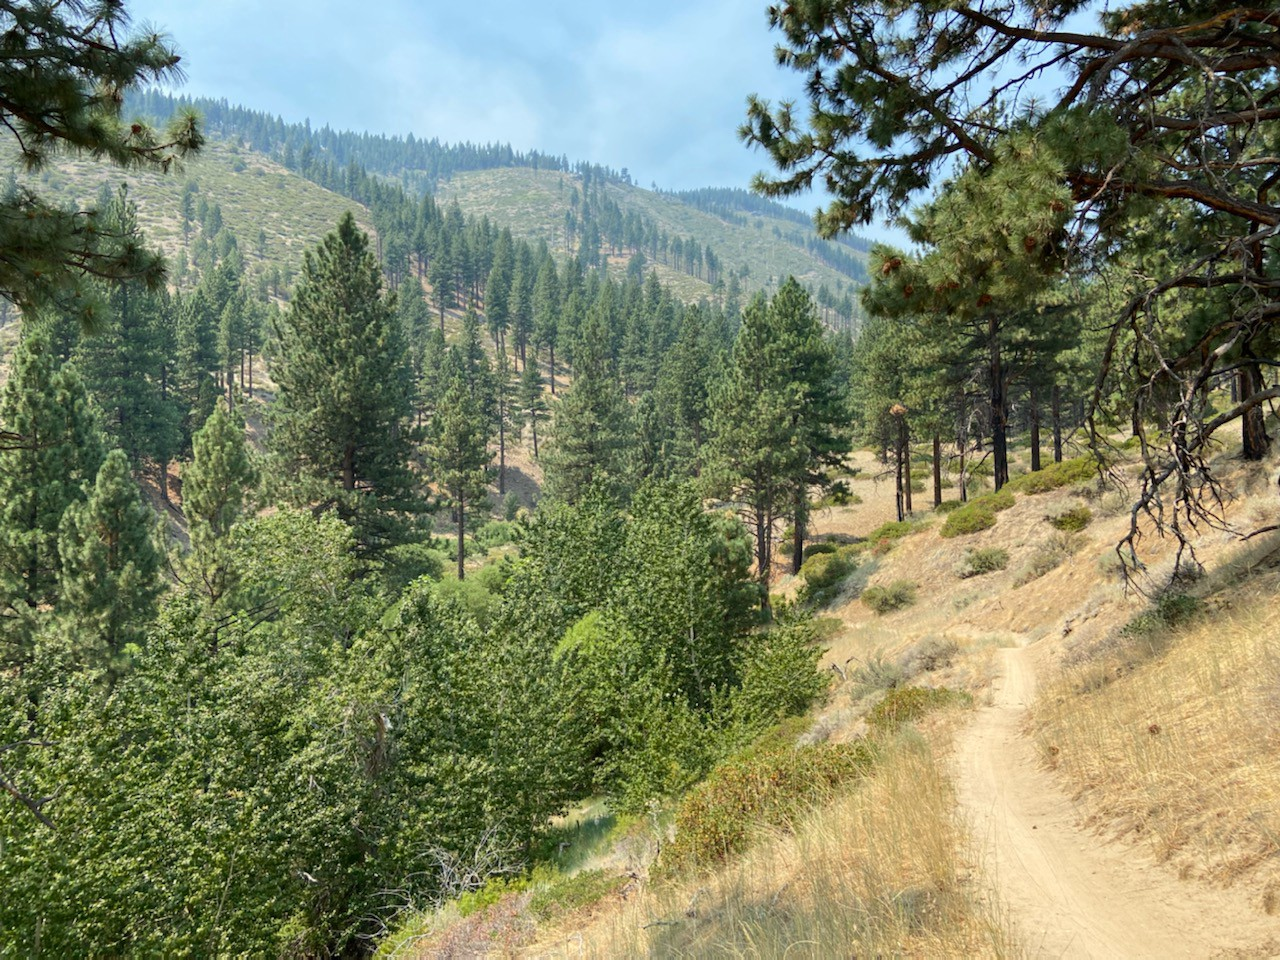 A dirt trail leading into pine trees with mountains and a smoky blue sky in the background.